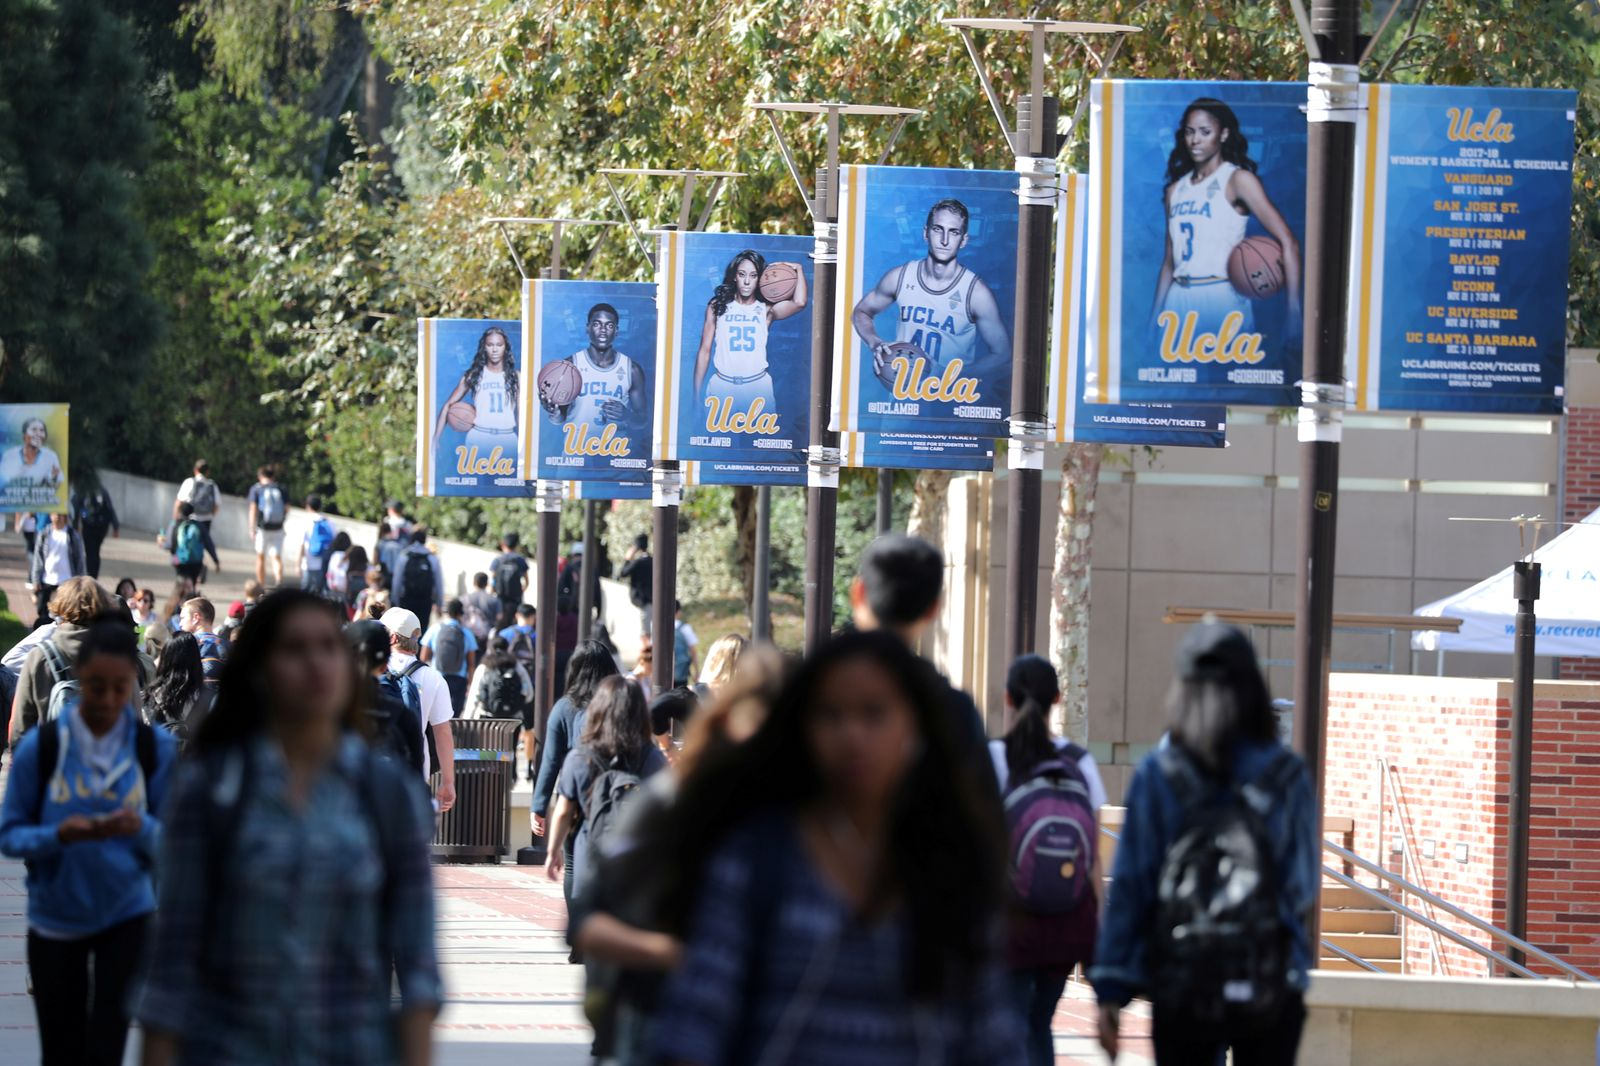 FILE PHOTO: University of California Los Angeles (UCLA) students walk on the UCLA campus in Los Angeles